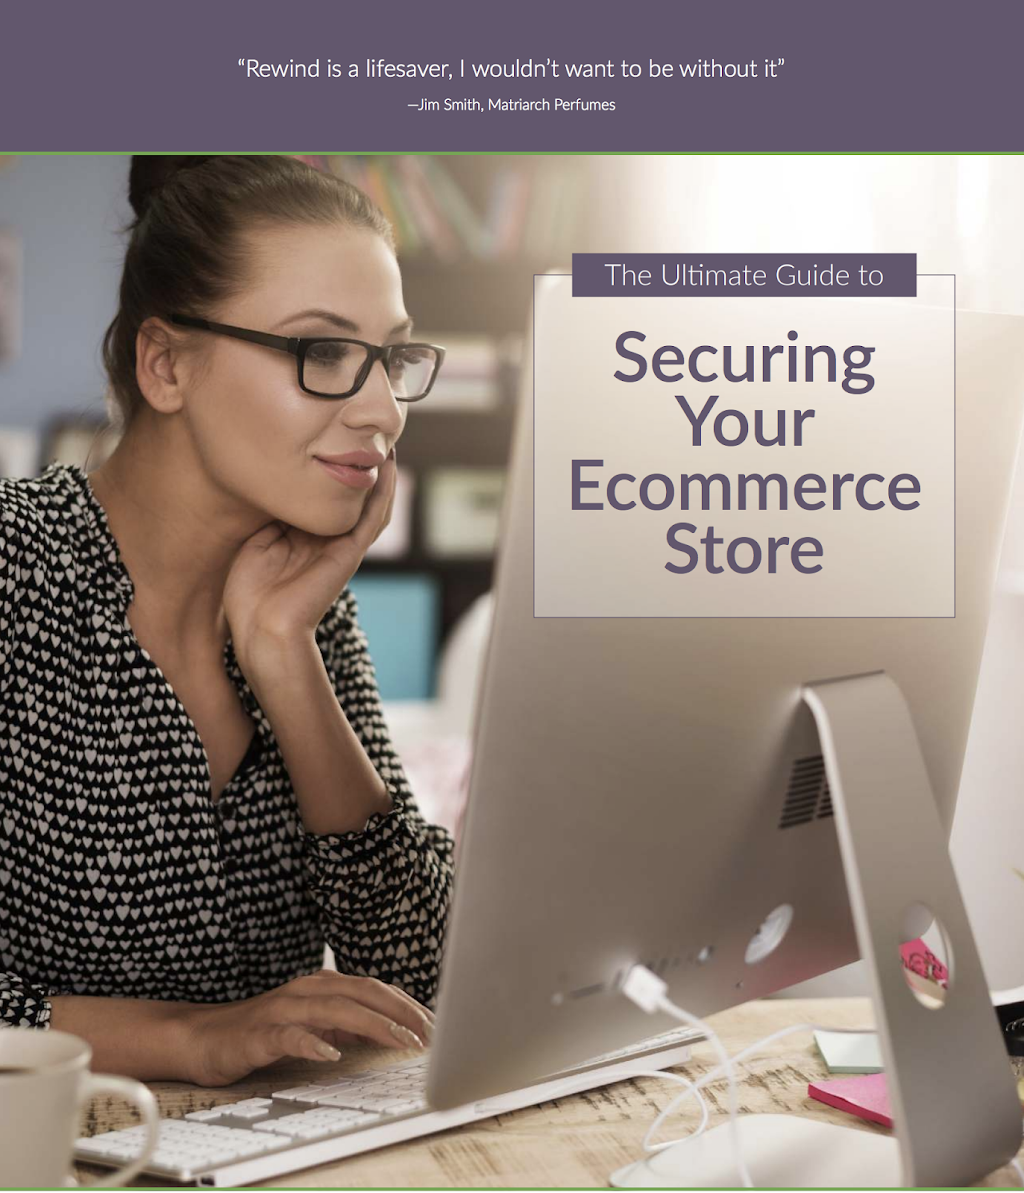 Secure your ecommerce store guide